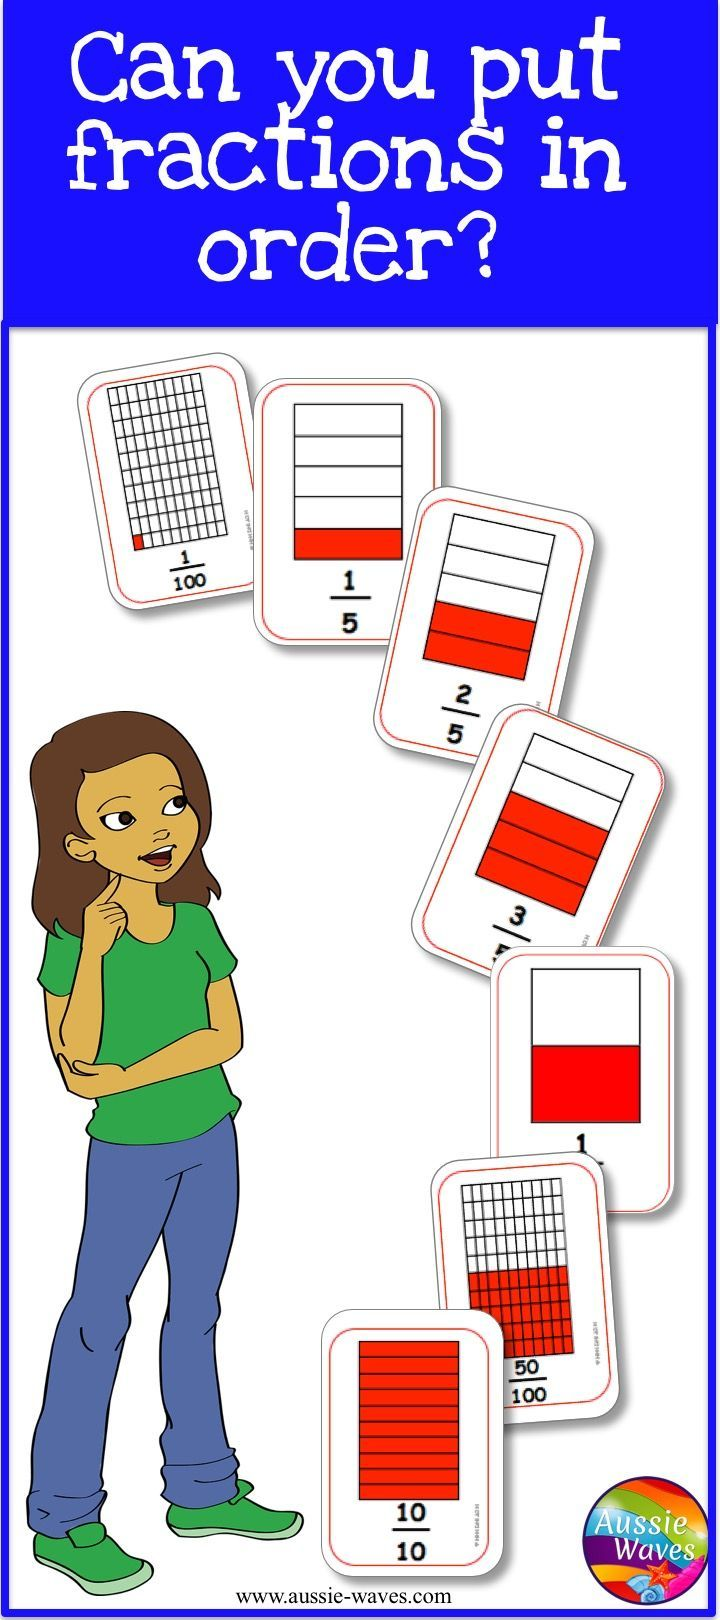 These are printable fraction cards, to use for centre activities. Make a number line, find equivalent fractions and play matching games.